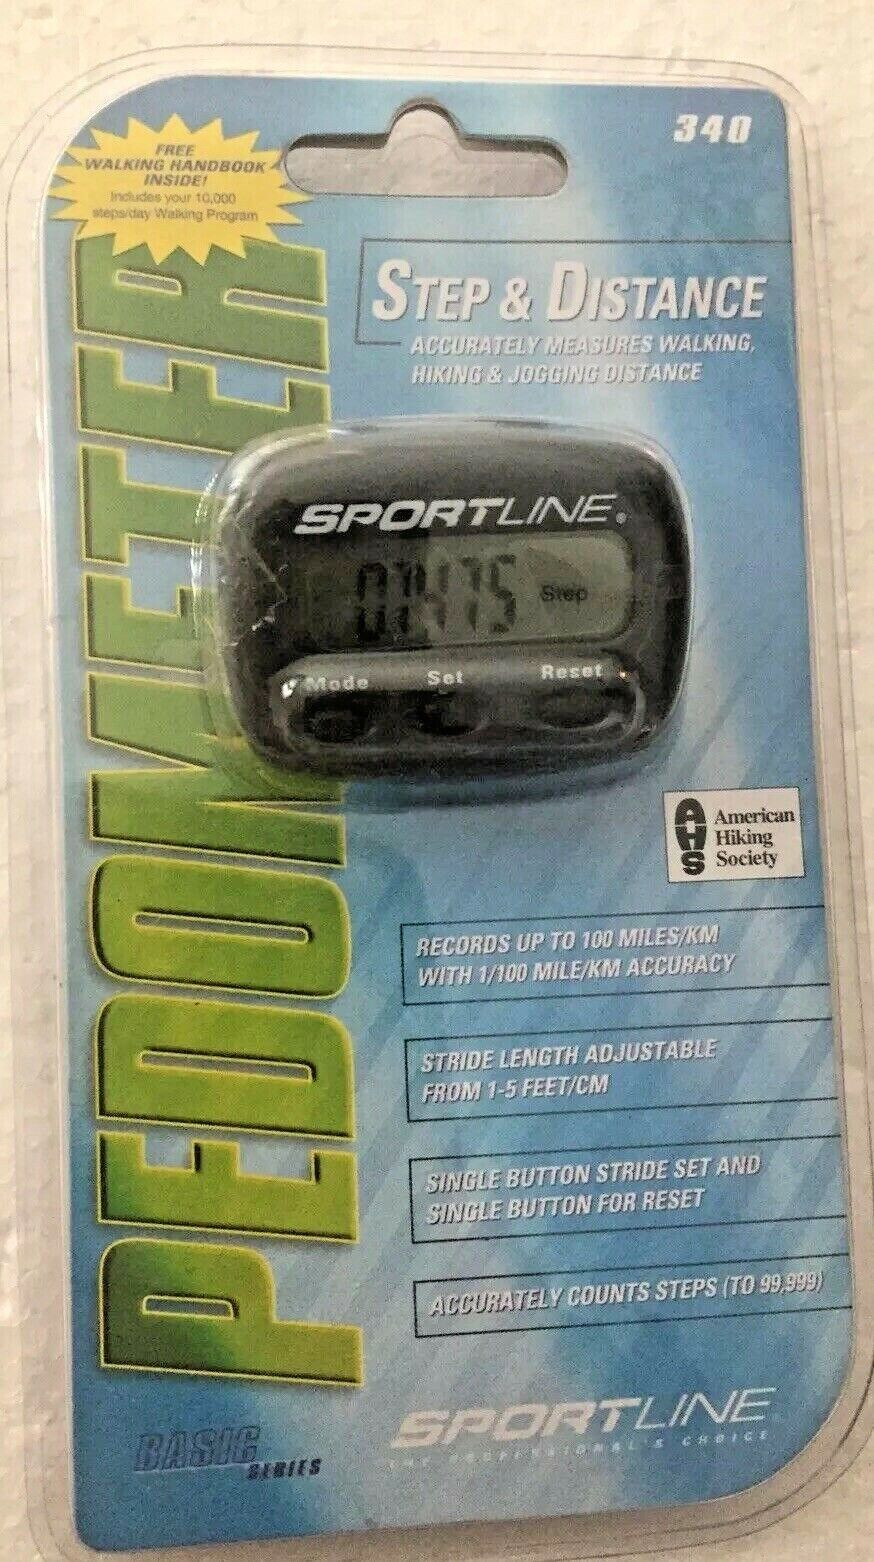 Sportline 340 Multifunction Pedometer - Step and Distance Wa